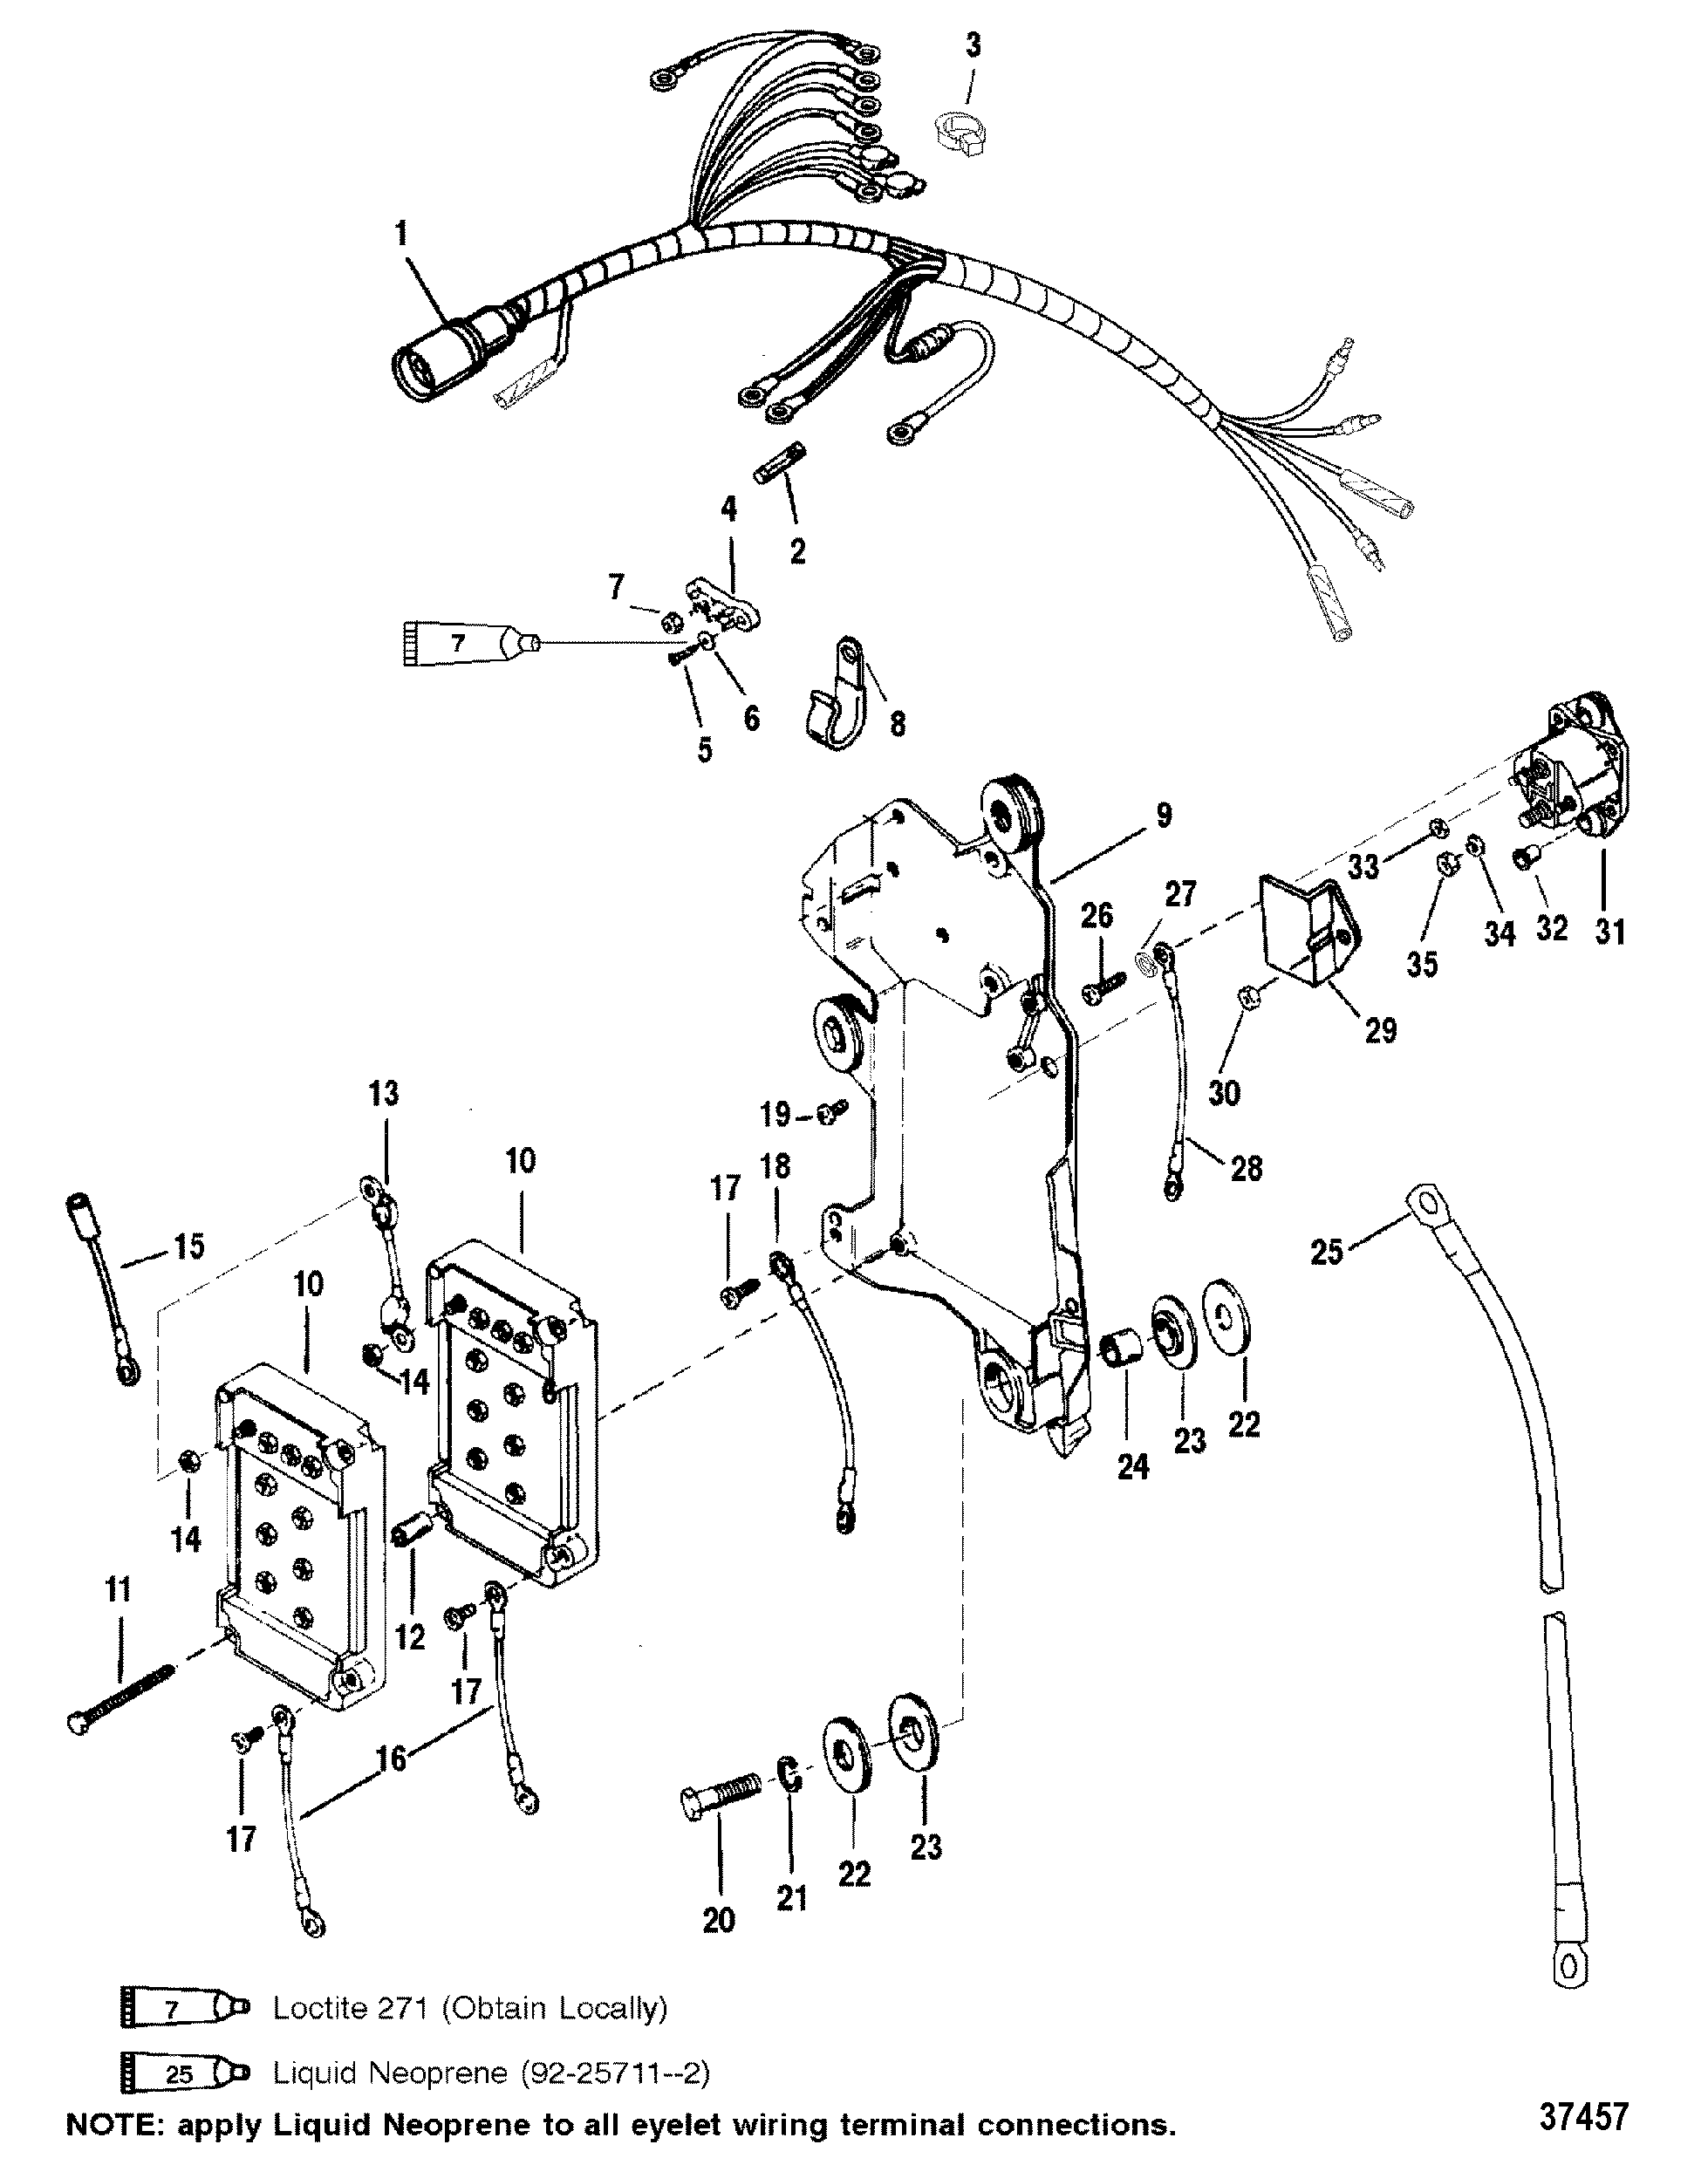 37457 wiring harness starter solenoid for mariner mercury 150 175 200 efi mercury 14 pin wiring harness diagram at bayanpartner.co